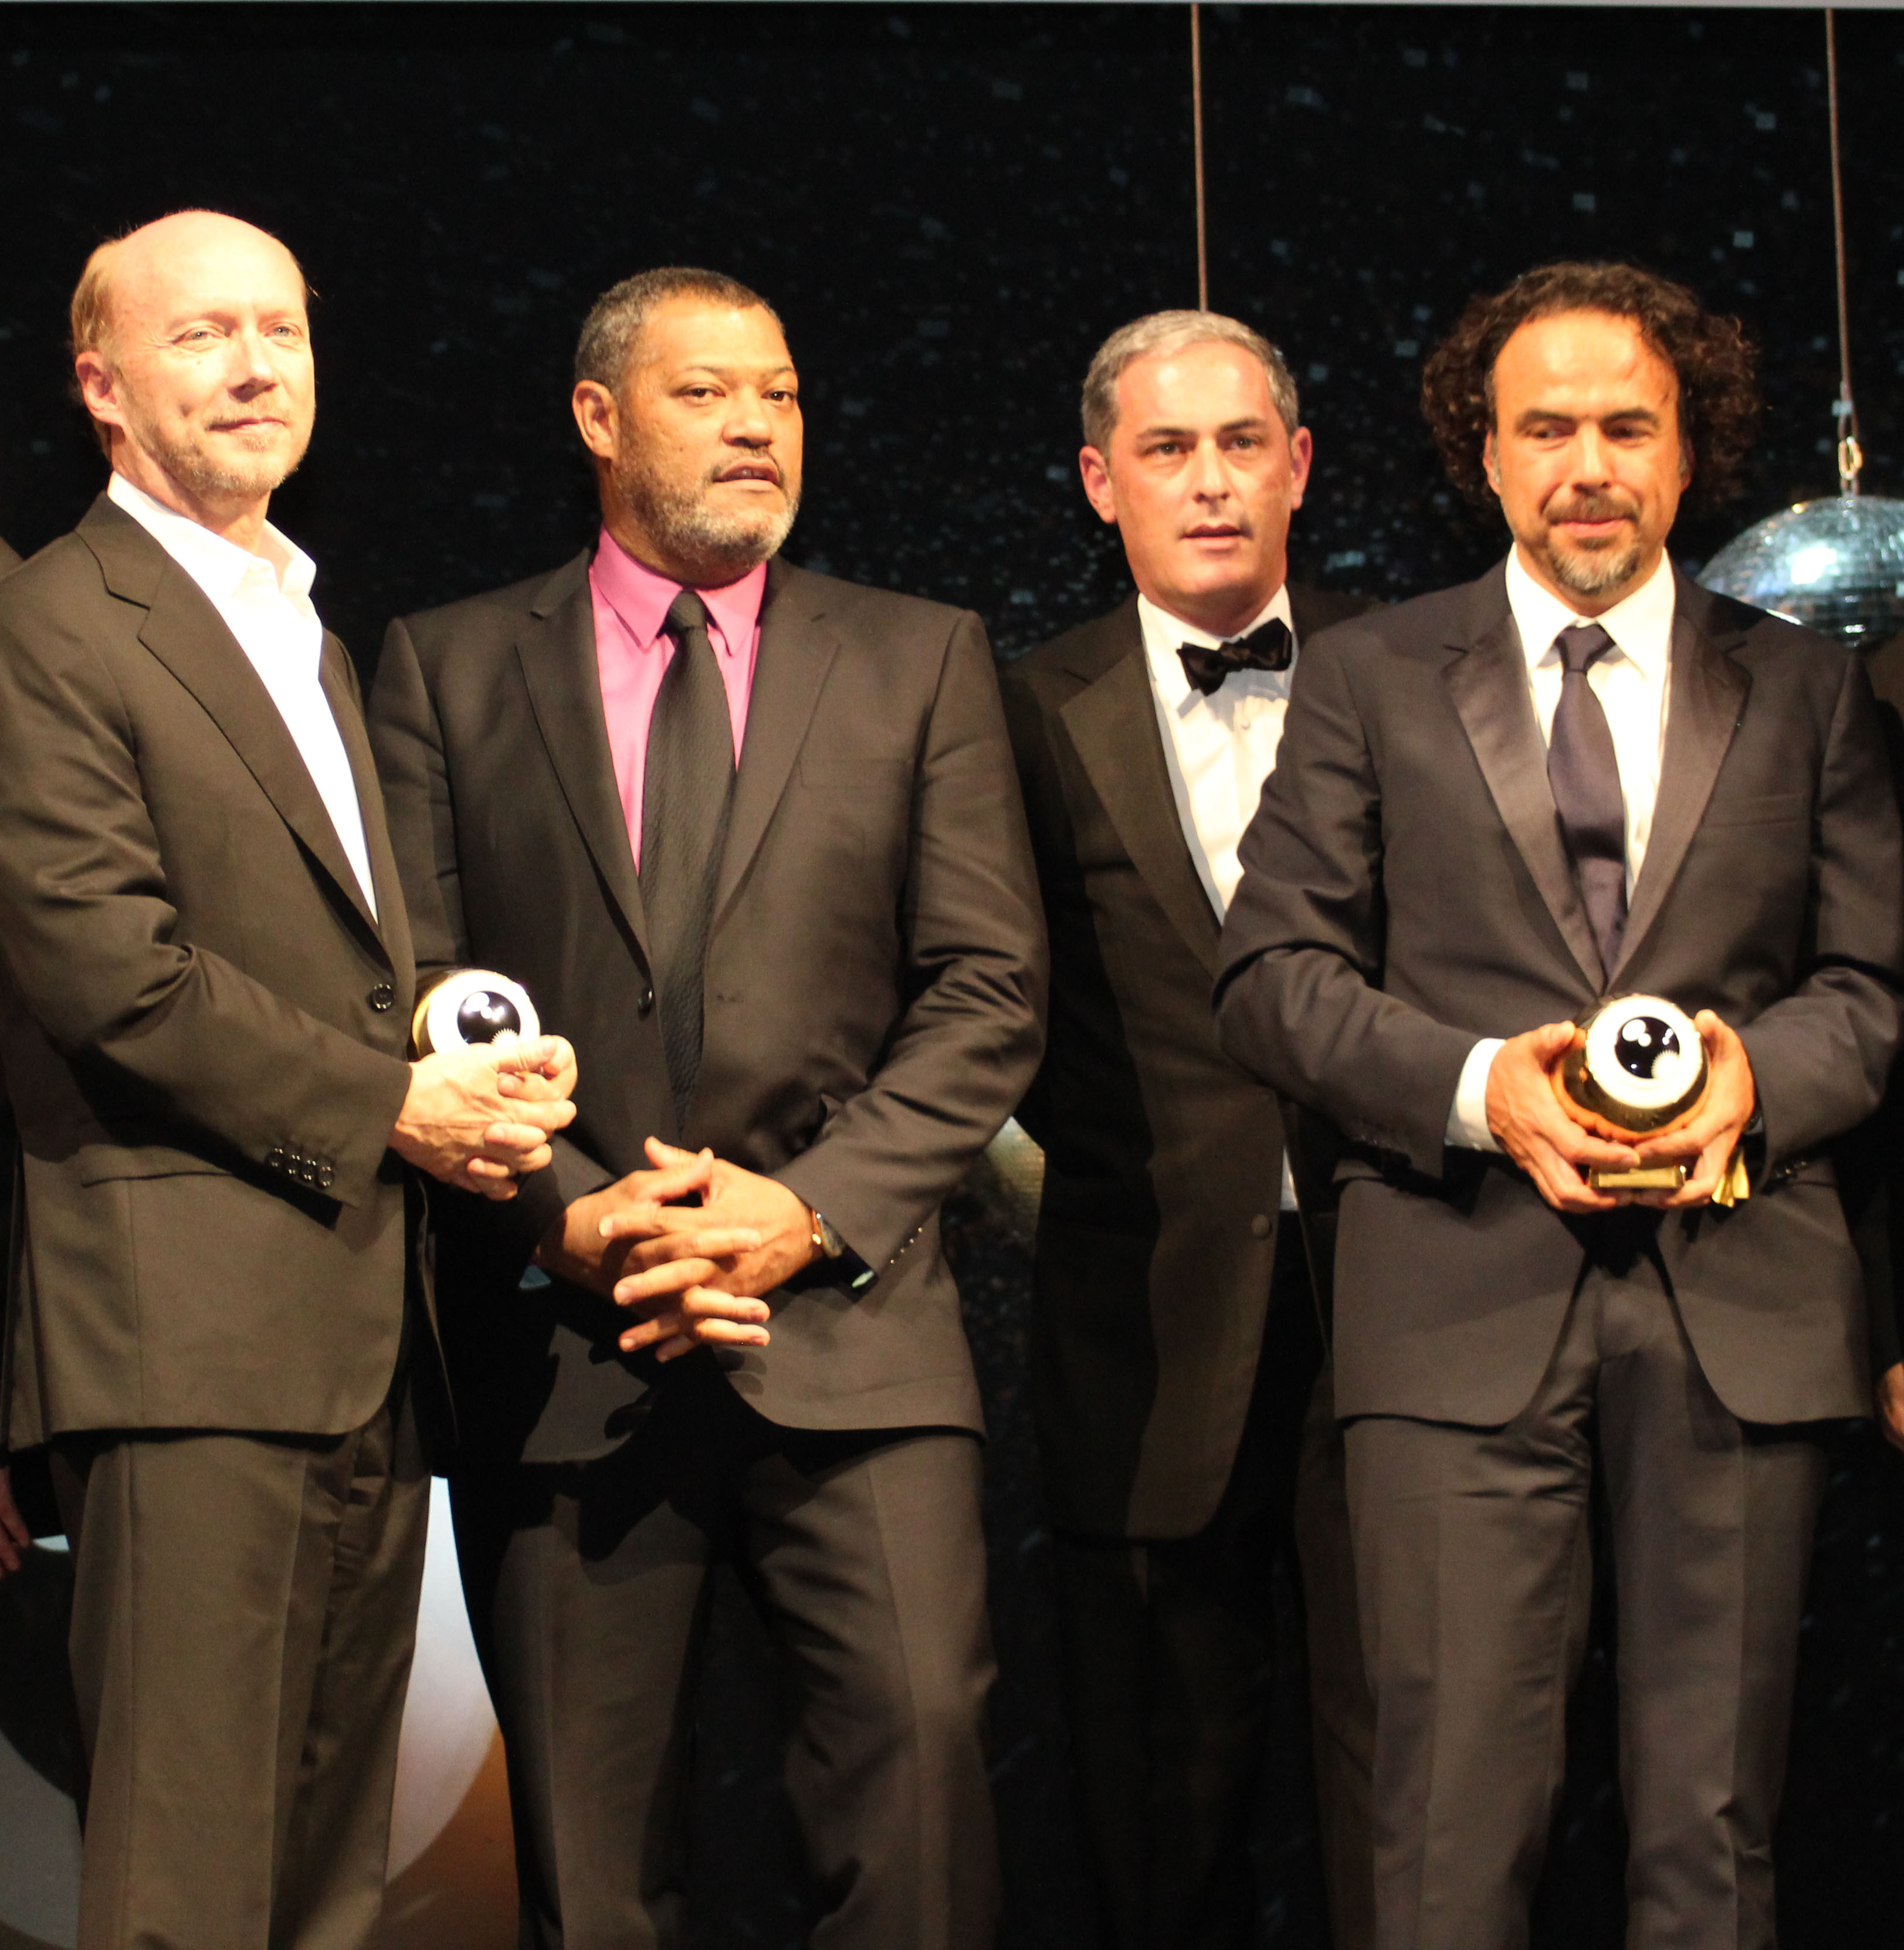 Paul Haggis (L) and Alejandro Gonzalez Inarritu (R) with their Golden Eyes at the closing ceremony of ZFF 2011